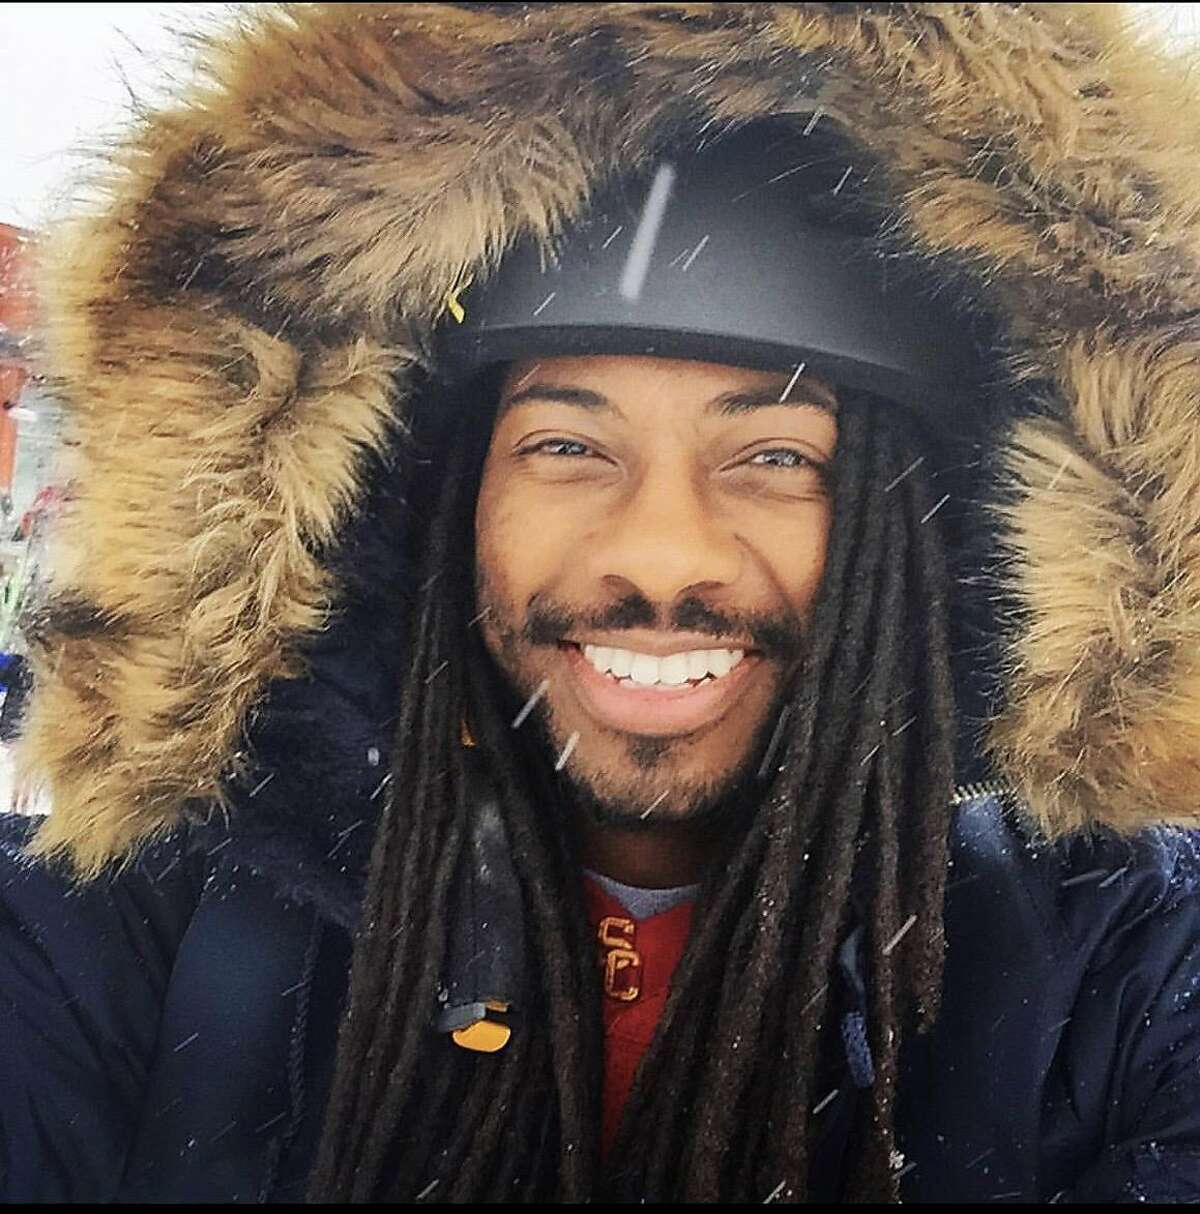 DeCarlis Wilson, 30, of San Francisco, poses for an undated photograph. Wilson had been riding his motorcycle on the 1800 block of Mission Street in San Francisco on Sunday, January 26, 2020 when a crash occurred at 4:45 p.m. on Sunday, according to the San Francisco Police Department.